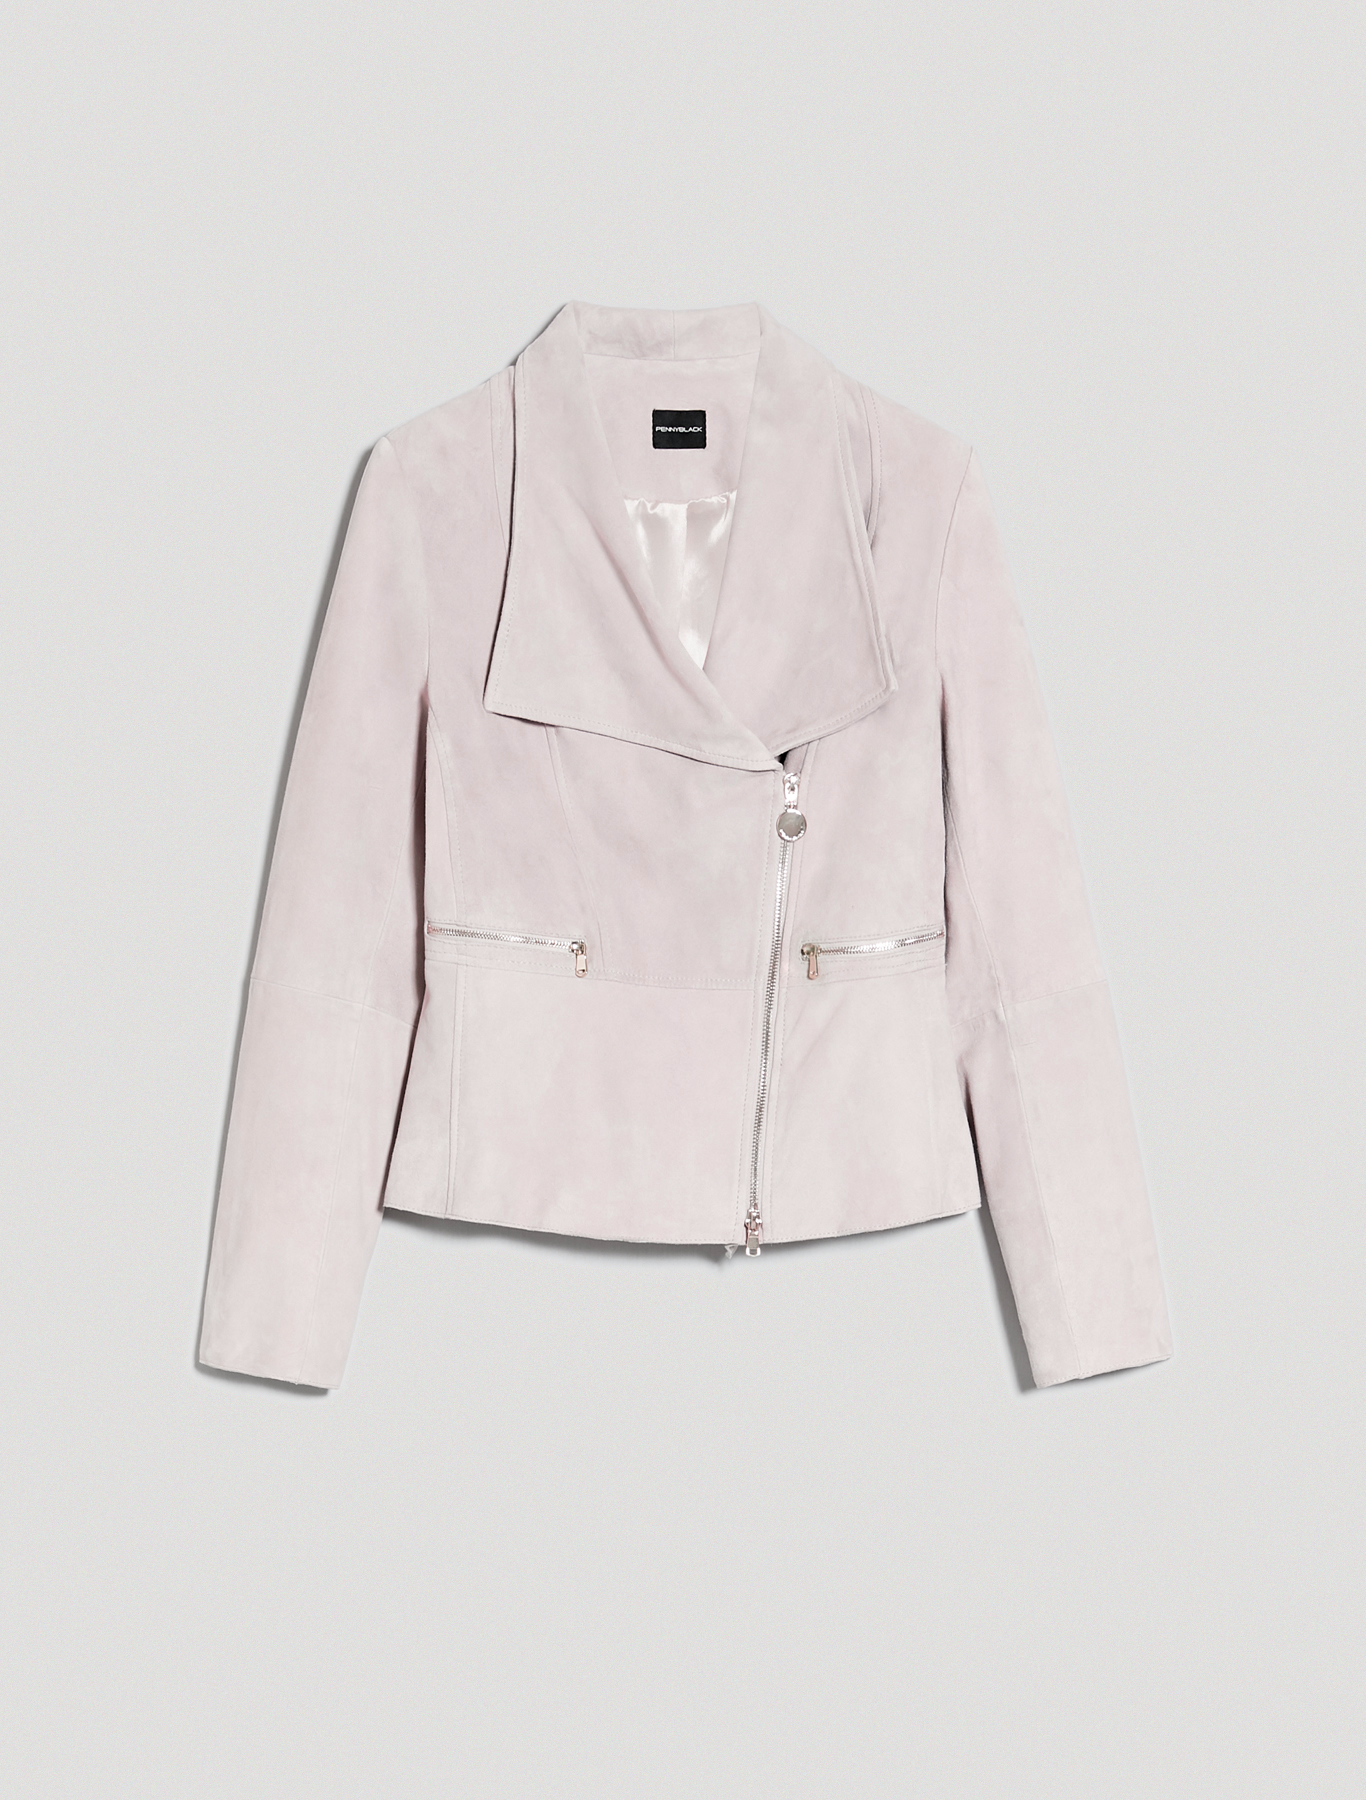 Suede nappa leather jacket - ivory - pennyblack